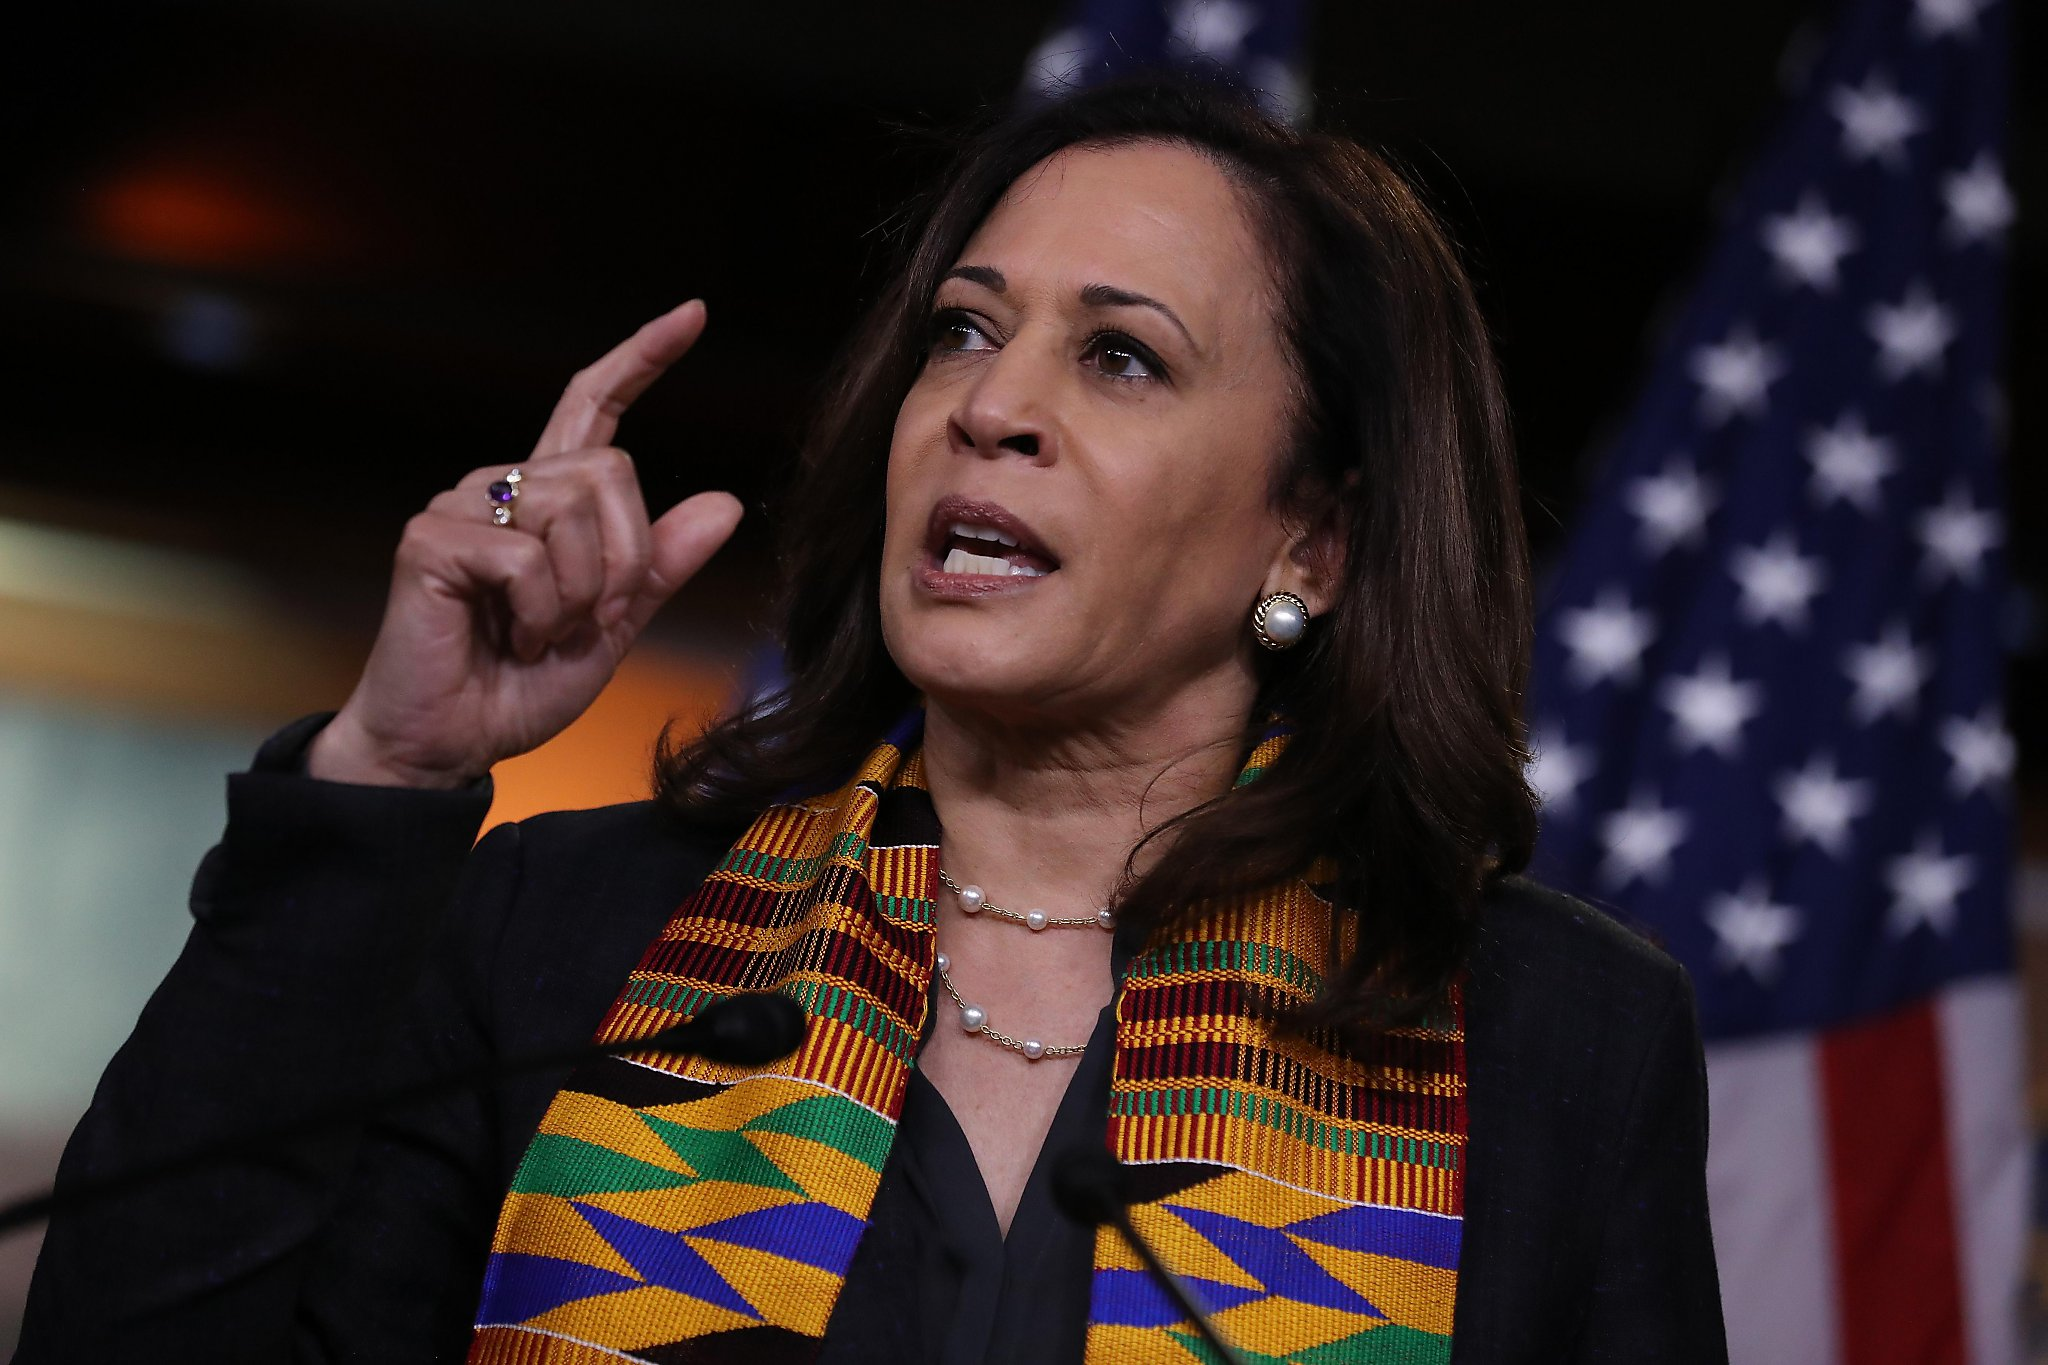 Spotlight on Kamala Harris exposes solitude of black women at top of politics - SFChronicle.com